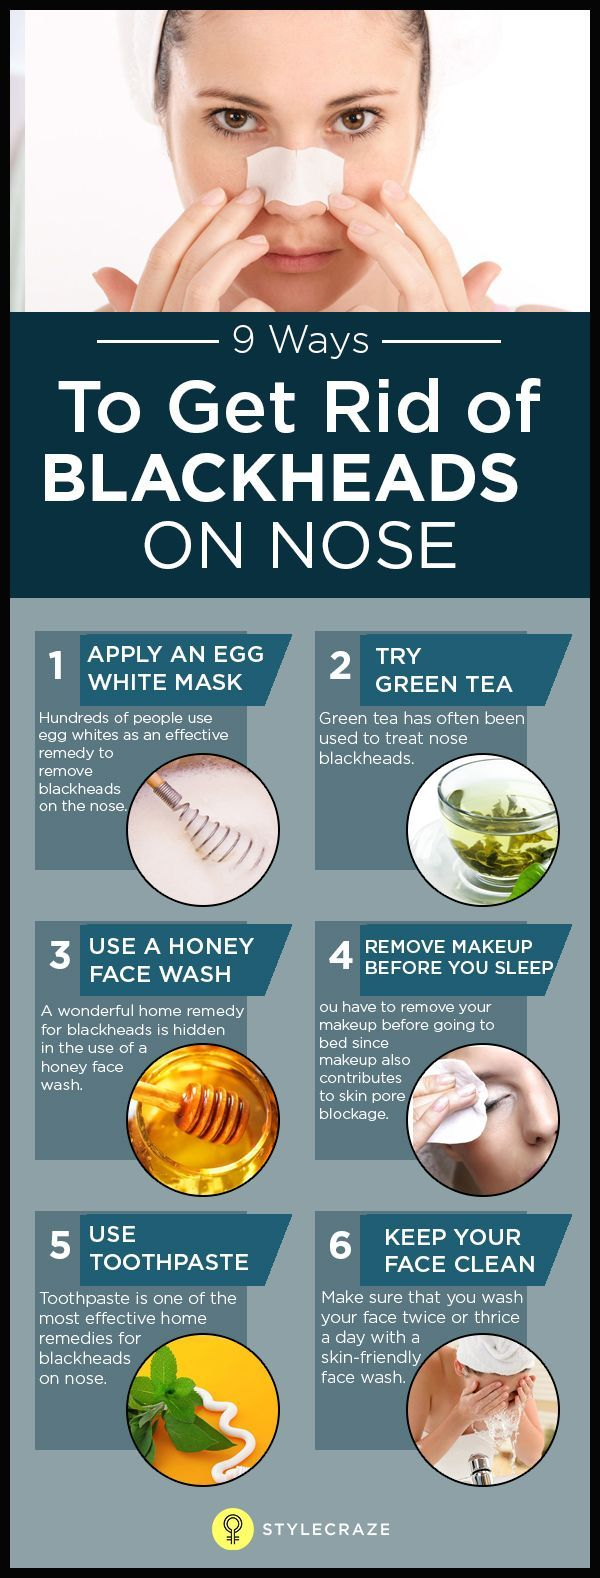 Nose Blackheads can make you quite miserable. Common to all skin types, they tend to spoil your skin quality, giving you an unattractive appearance. Although the process of removing blackheads is easy, one wrong move can leave permanent marks on your skin.